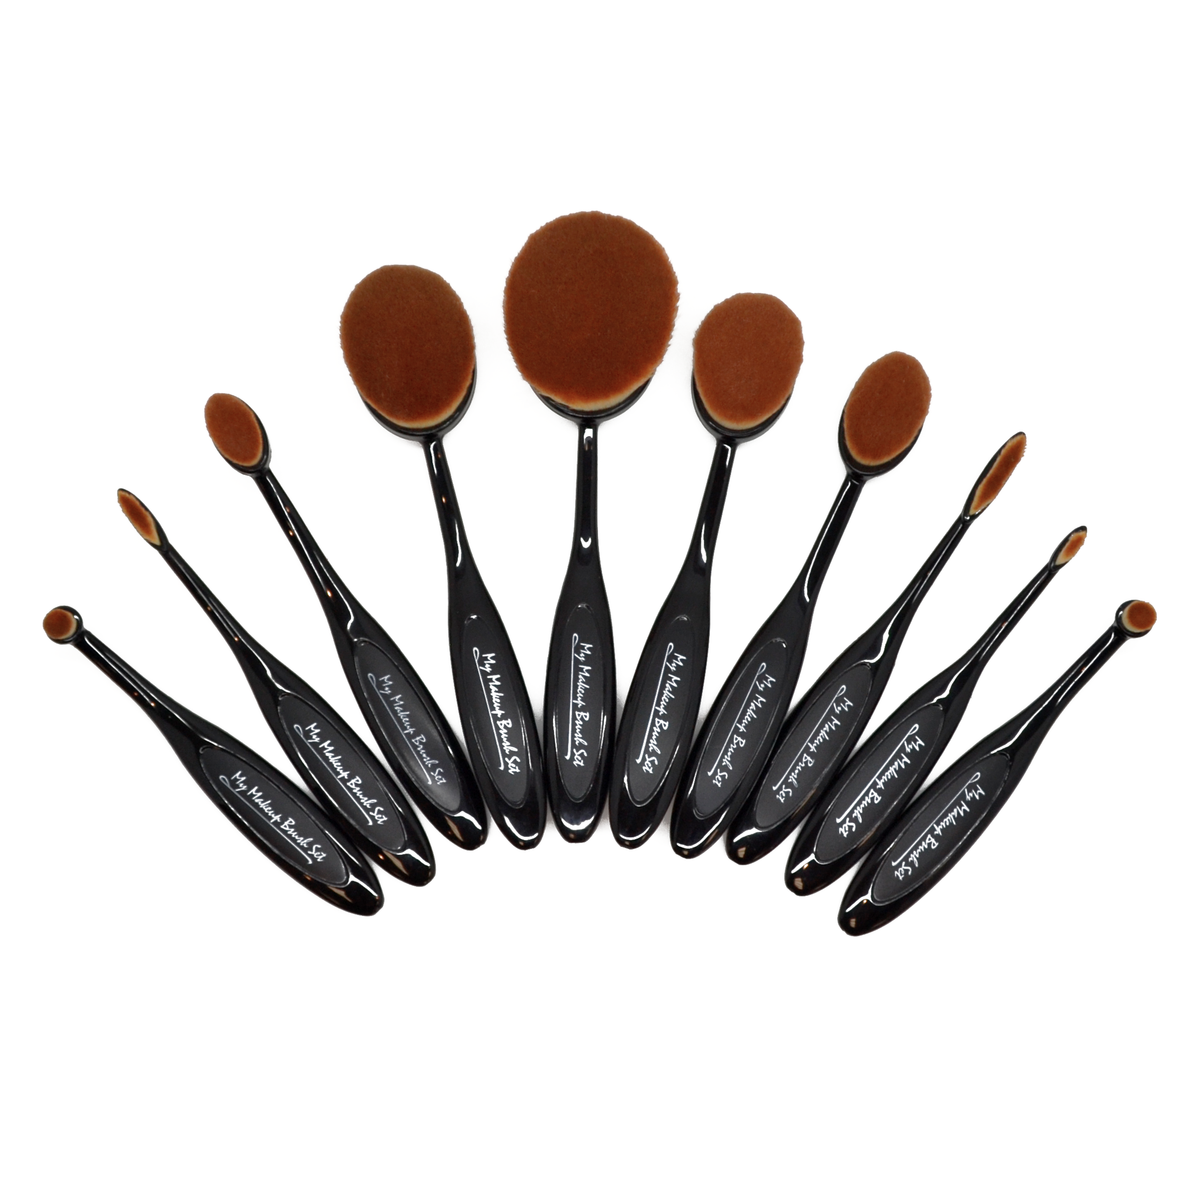 10 Piece Black Oval Make Up Brush Set